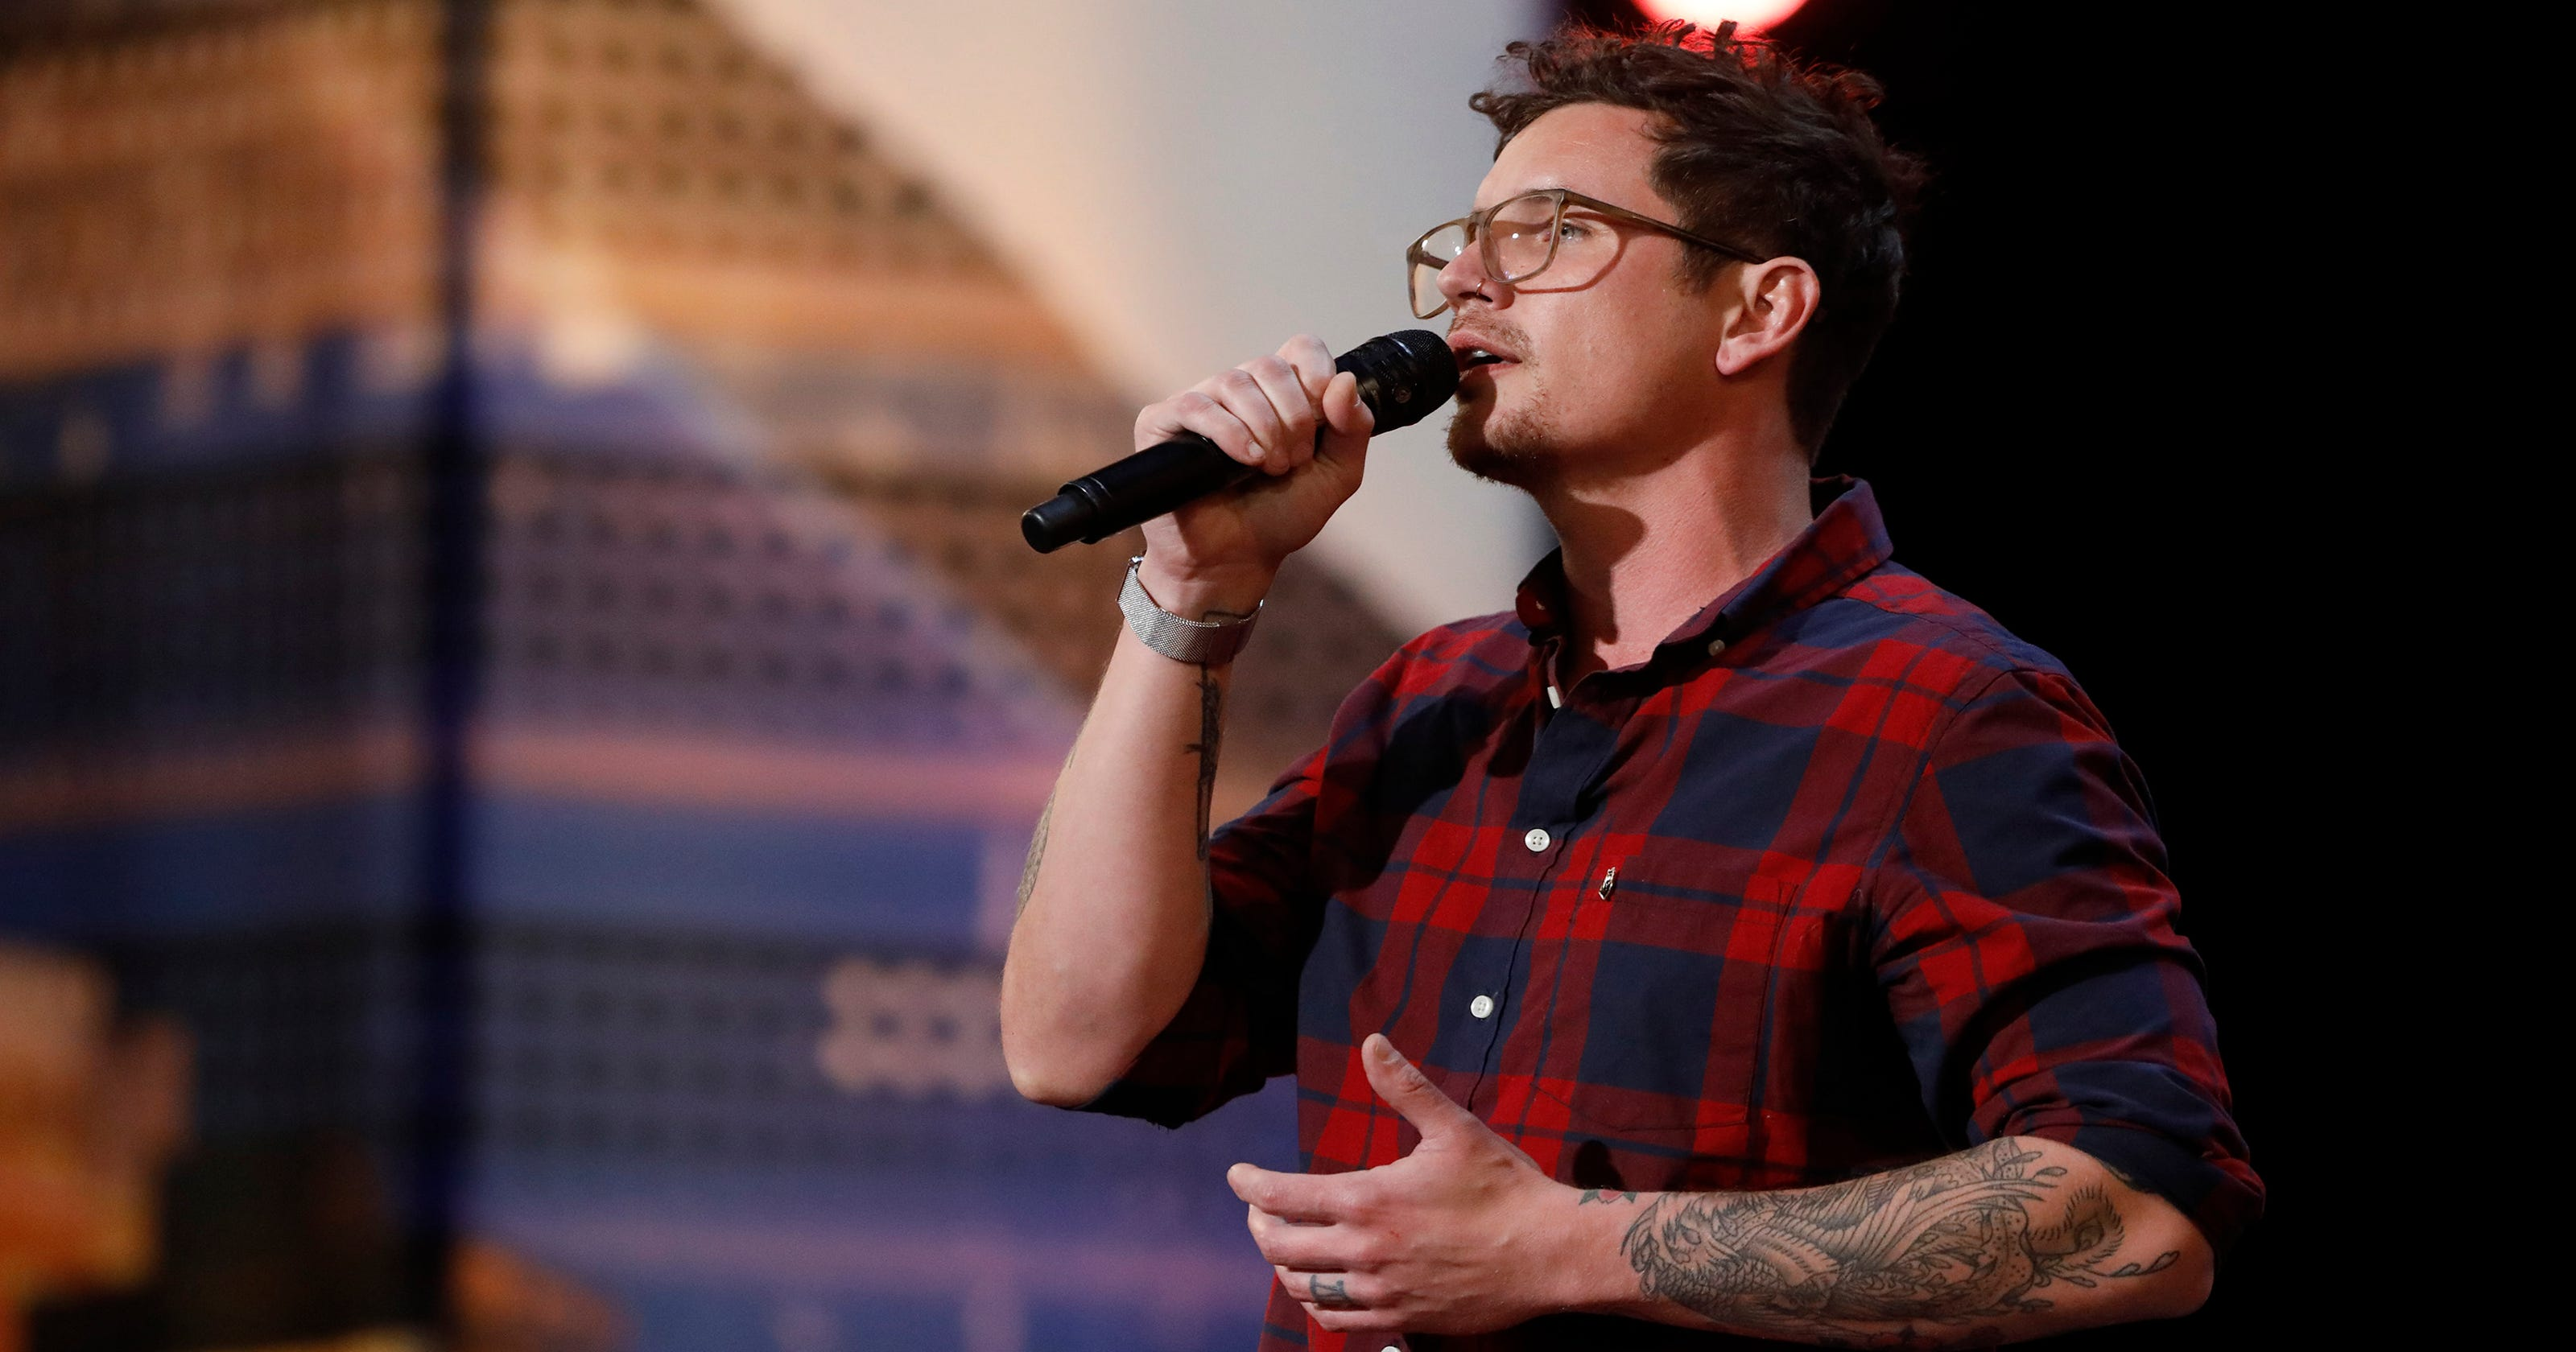 AGT Michael Ketterer: 5 things to know about To Love Somebody singer